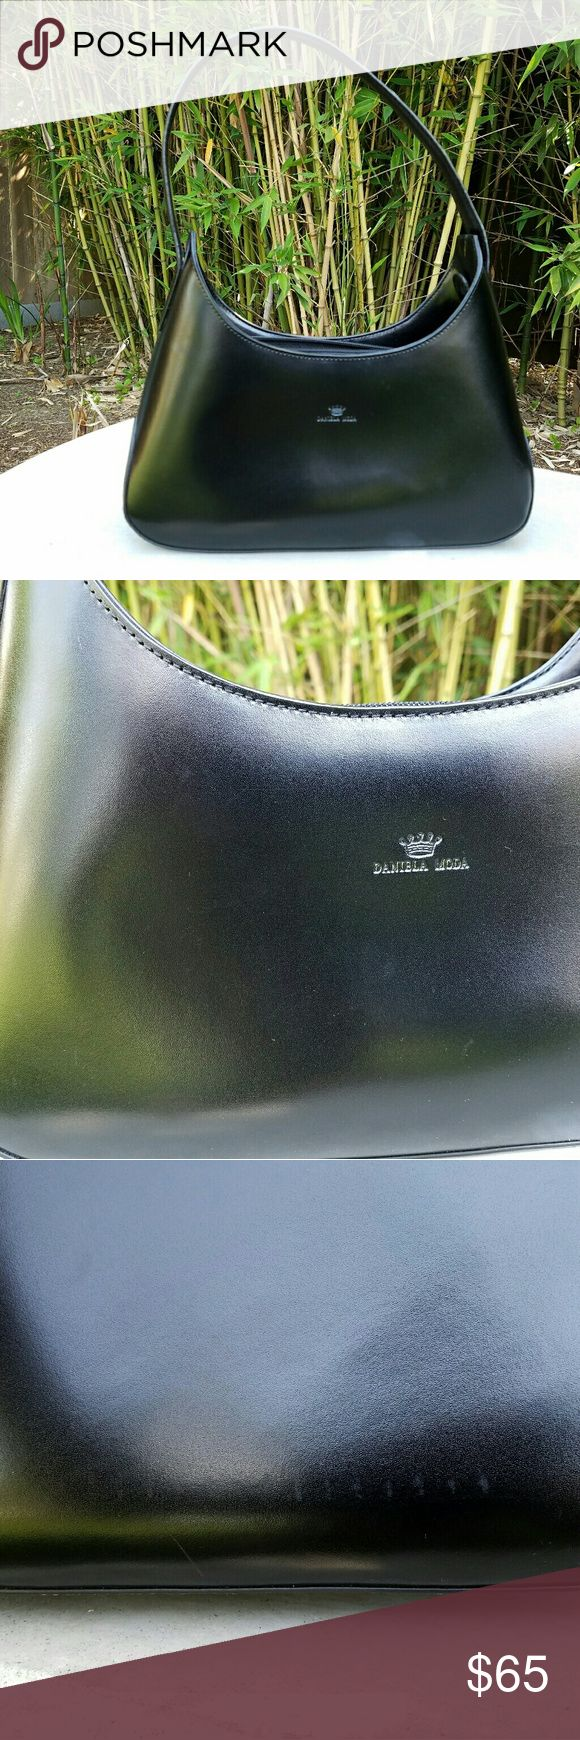 """Daniela Moda Italian Black Vera Pelle Handbag NWOT. High quality leather and craftsmanship on this free-standing purse. Very small marks in one area near bottom are hardly visible to naked eye-  but shows up mre in photograph (see 3rd photo). Very  sophsticated bag. 9"""" length, 4-1/2"""" bottom to zipper, 13-1/2 inches from bottom to top of strap. Daniela Moda Bags Mini Bags"""